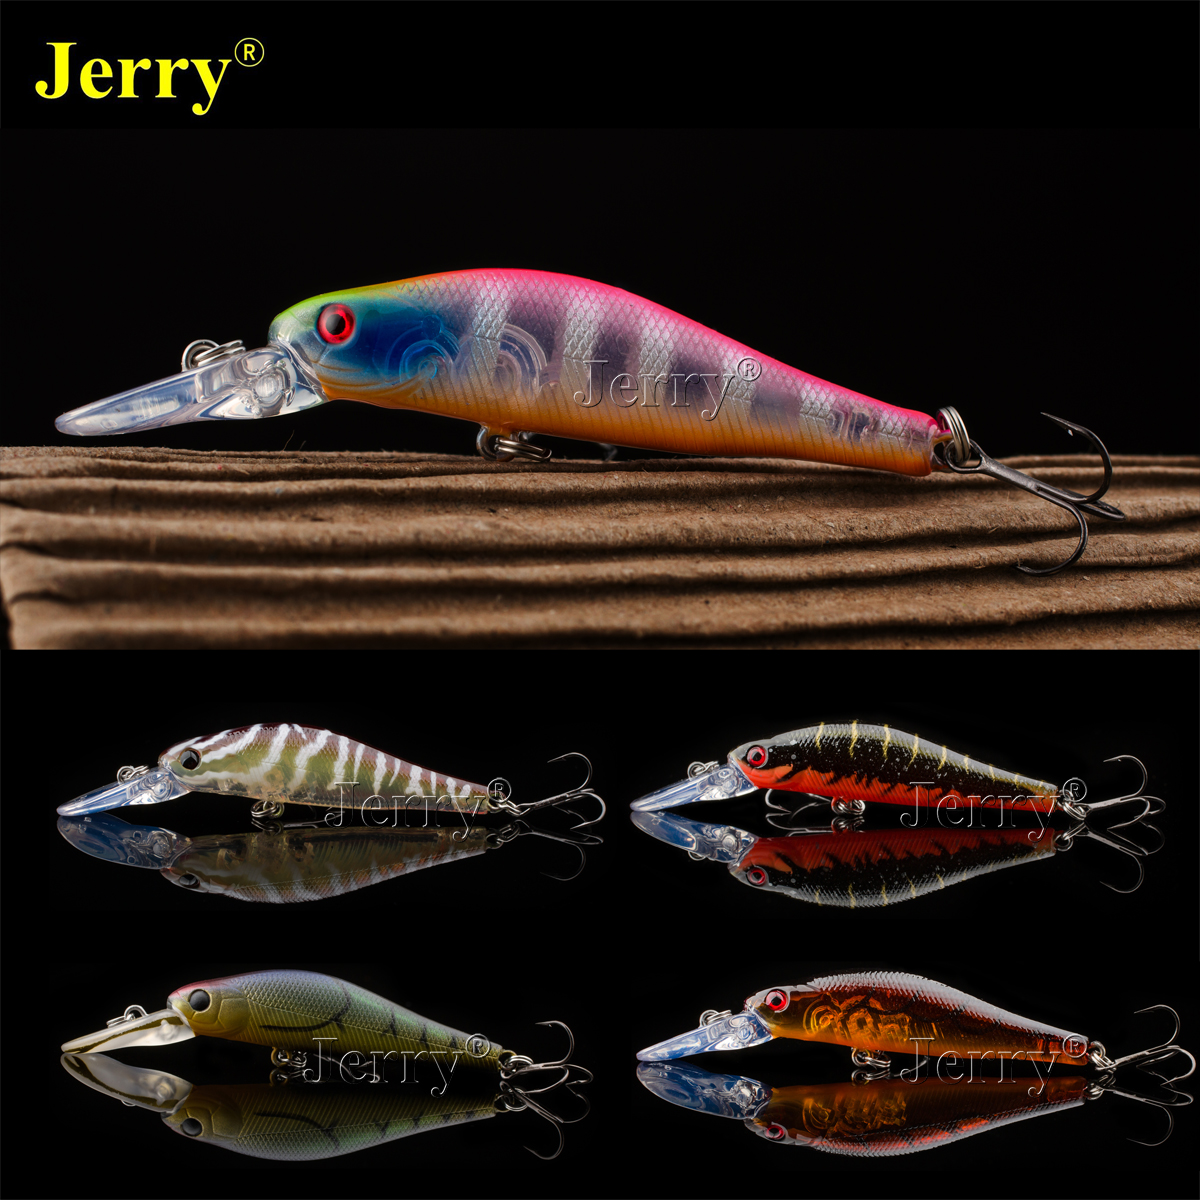 Jerry Japan minnow 5.5cm/2.17in 4g BKK hook deep medium diving jerkbait crankbait hard lure bait plug fishing crank bait wldslure 1pc 54g minnow sea fishing crankbait bass hard bait tuna lures wobbler trolling lure treble hook